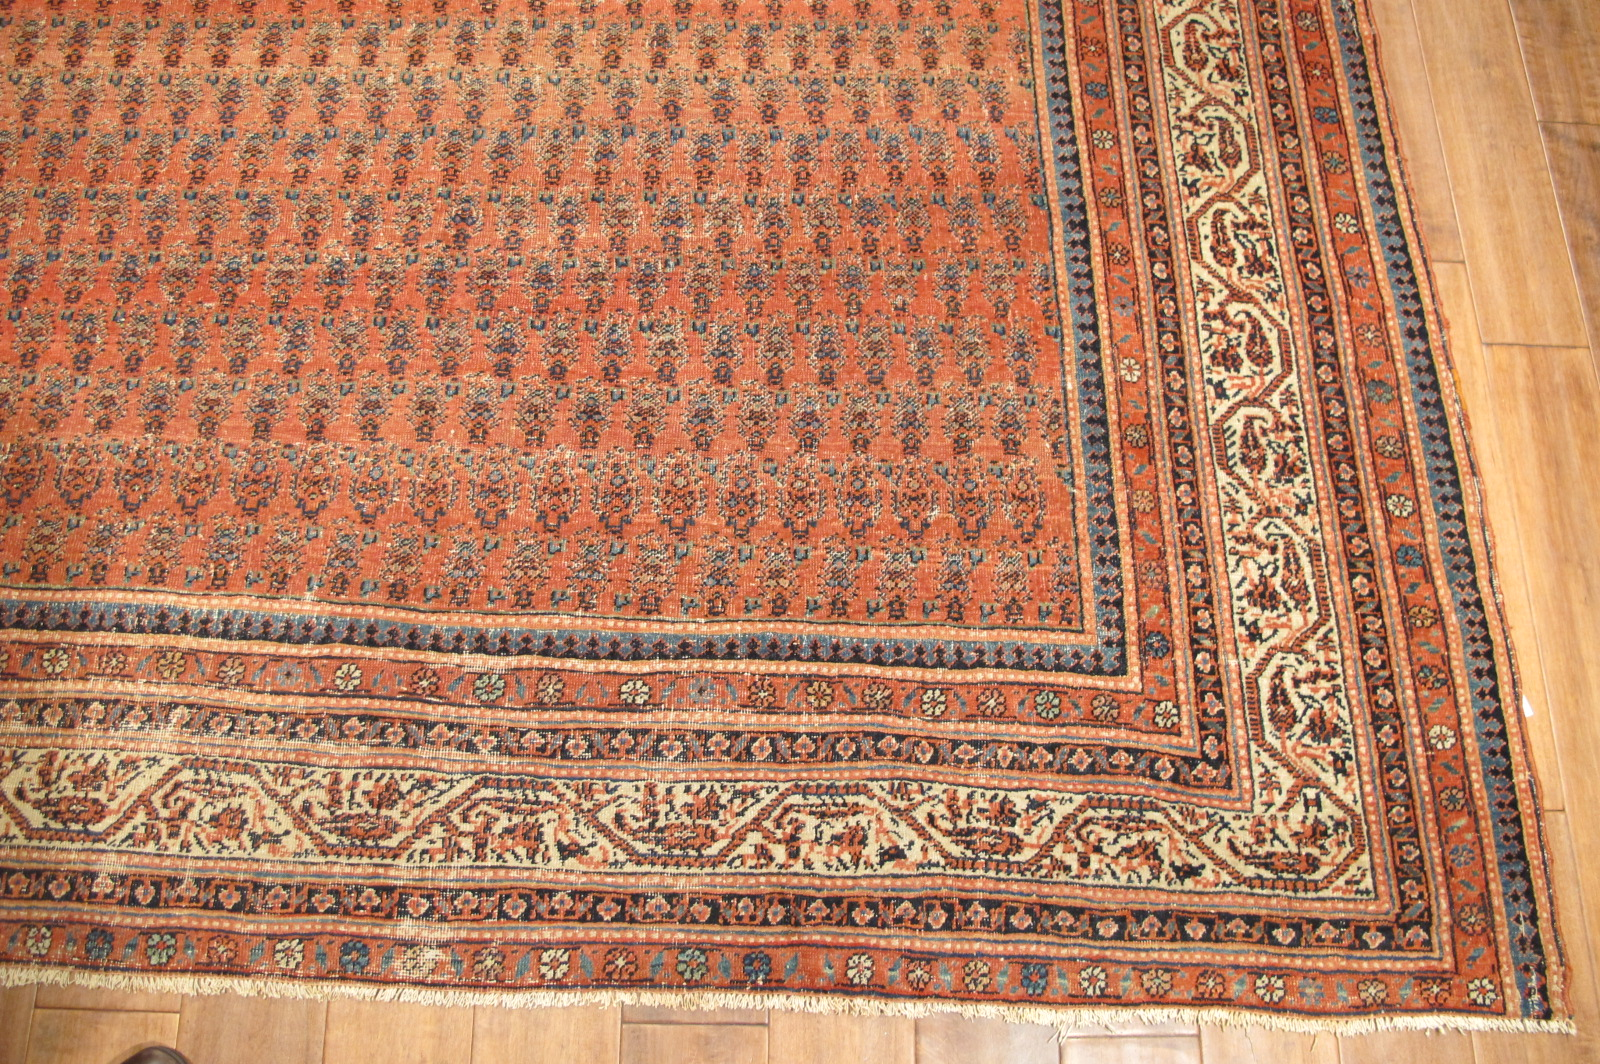 12866 antique persian serband corridor rug 6,9 x 16 (2)